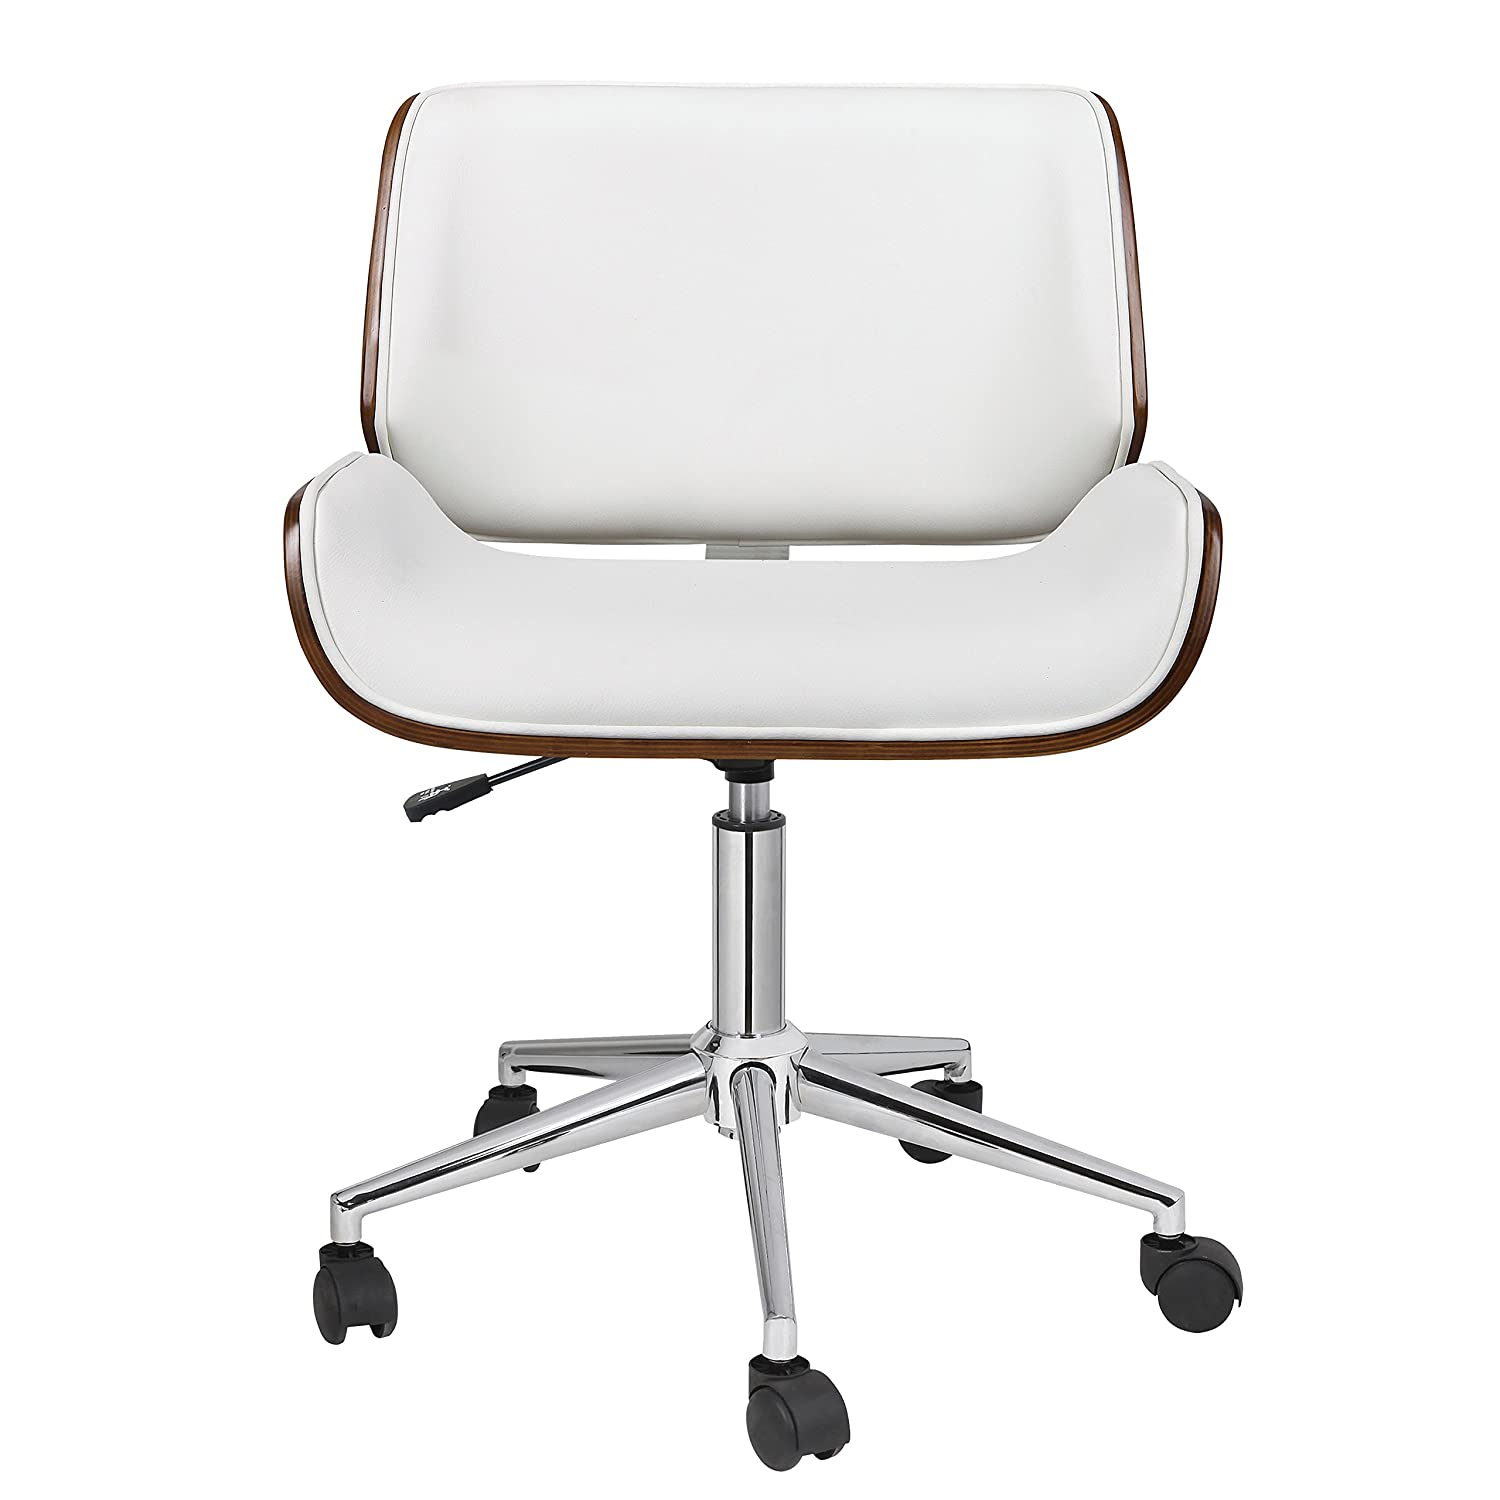 Mid century office chair Wood Porthos Home Kch019a Wht Dove Office Chairs In Midcentury Modern Design With Leather Upholstery Wooden Accents Stainless Steel Legs Roller Wheels Amazoncom Amazoncom Porthos Home Kch019a Wht Dove Office Chairs In Mid